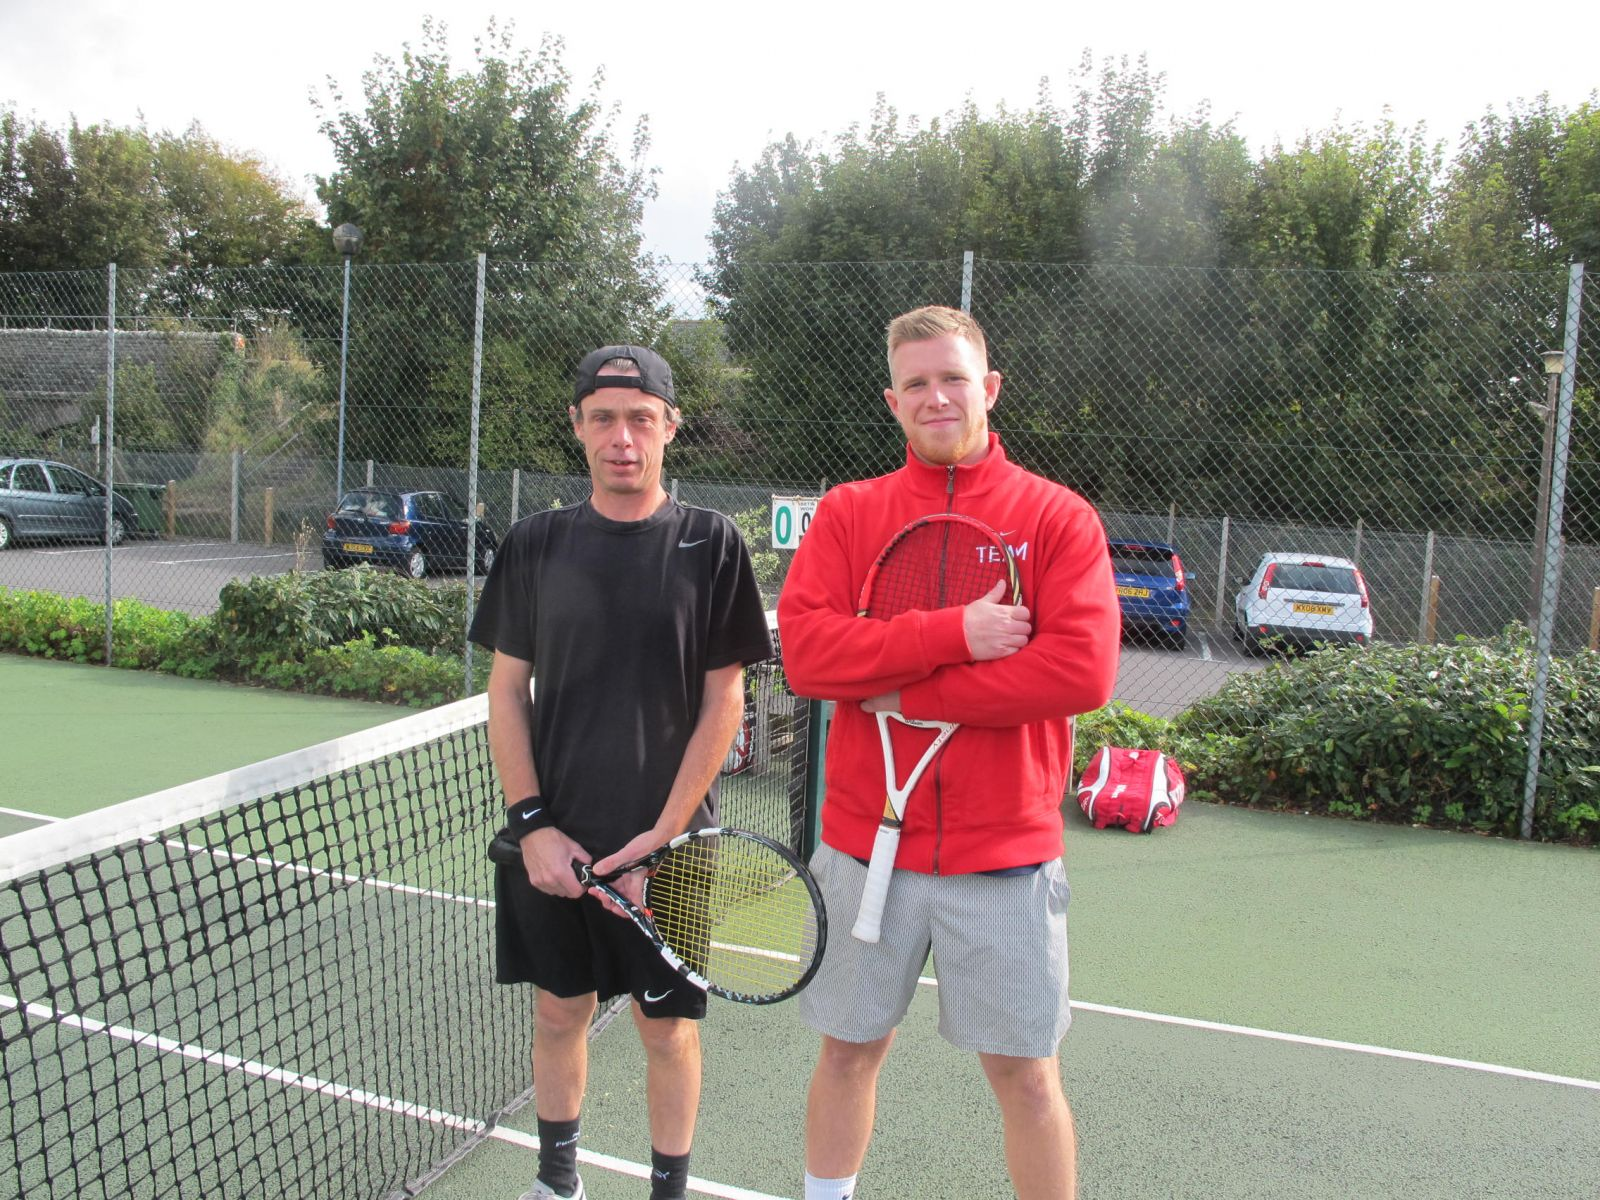 Men's Singles finalists Guy Simmons and Guy O'Neill (right)